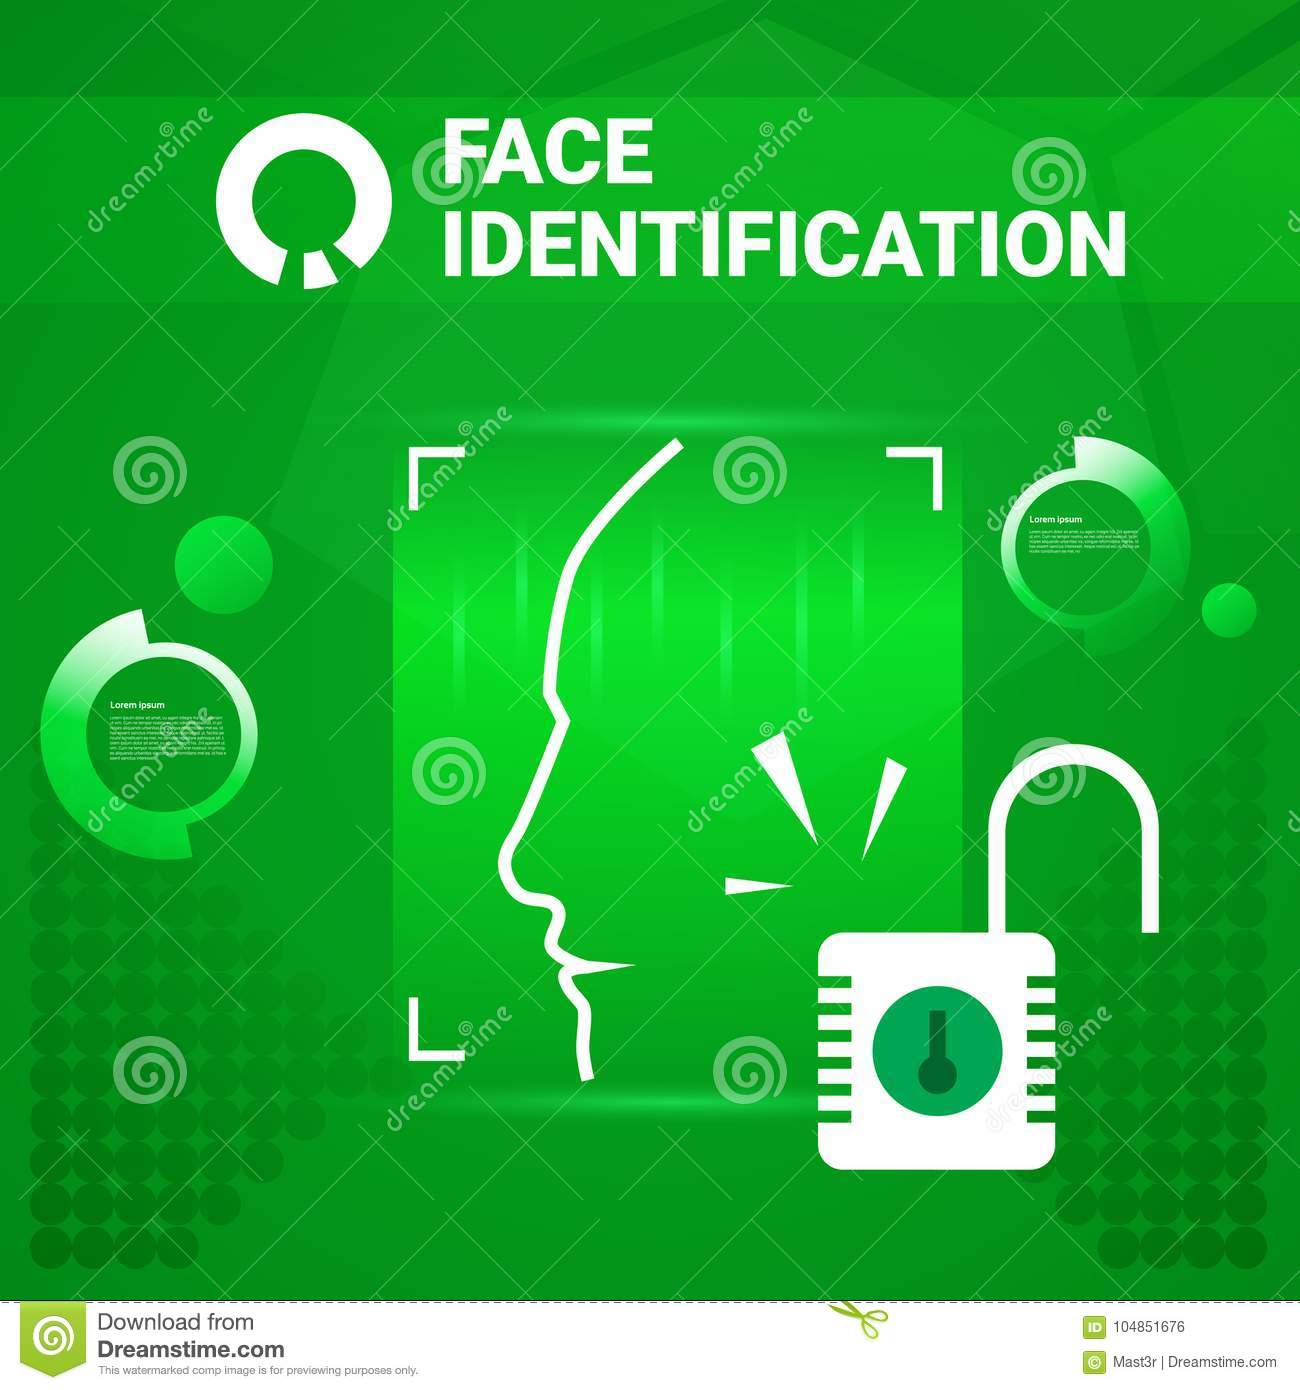 User Getting Access After Face Identification Scanning Modern Technology Of Biometrical Recognition Concept